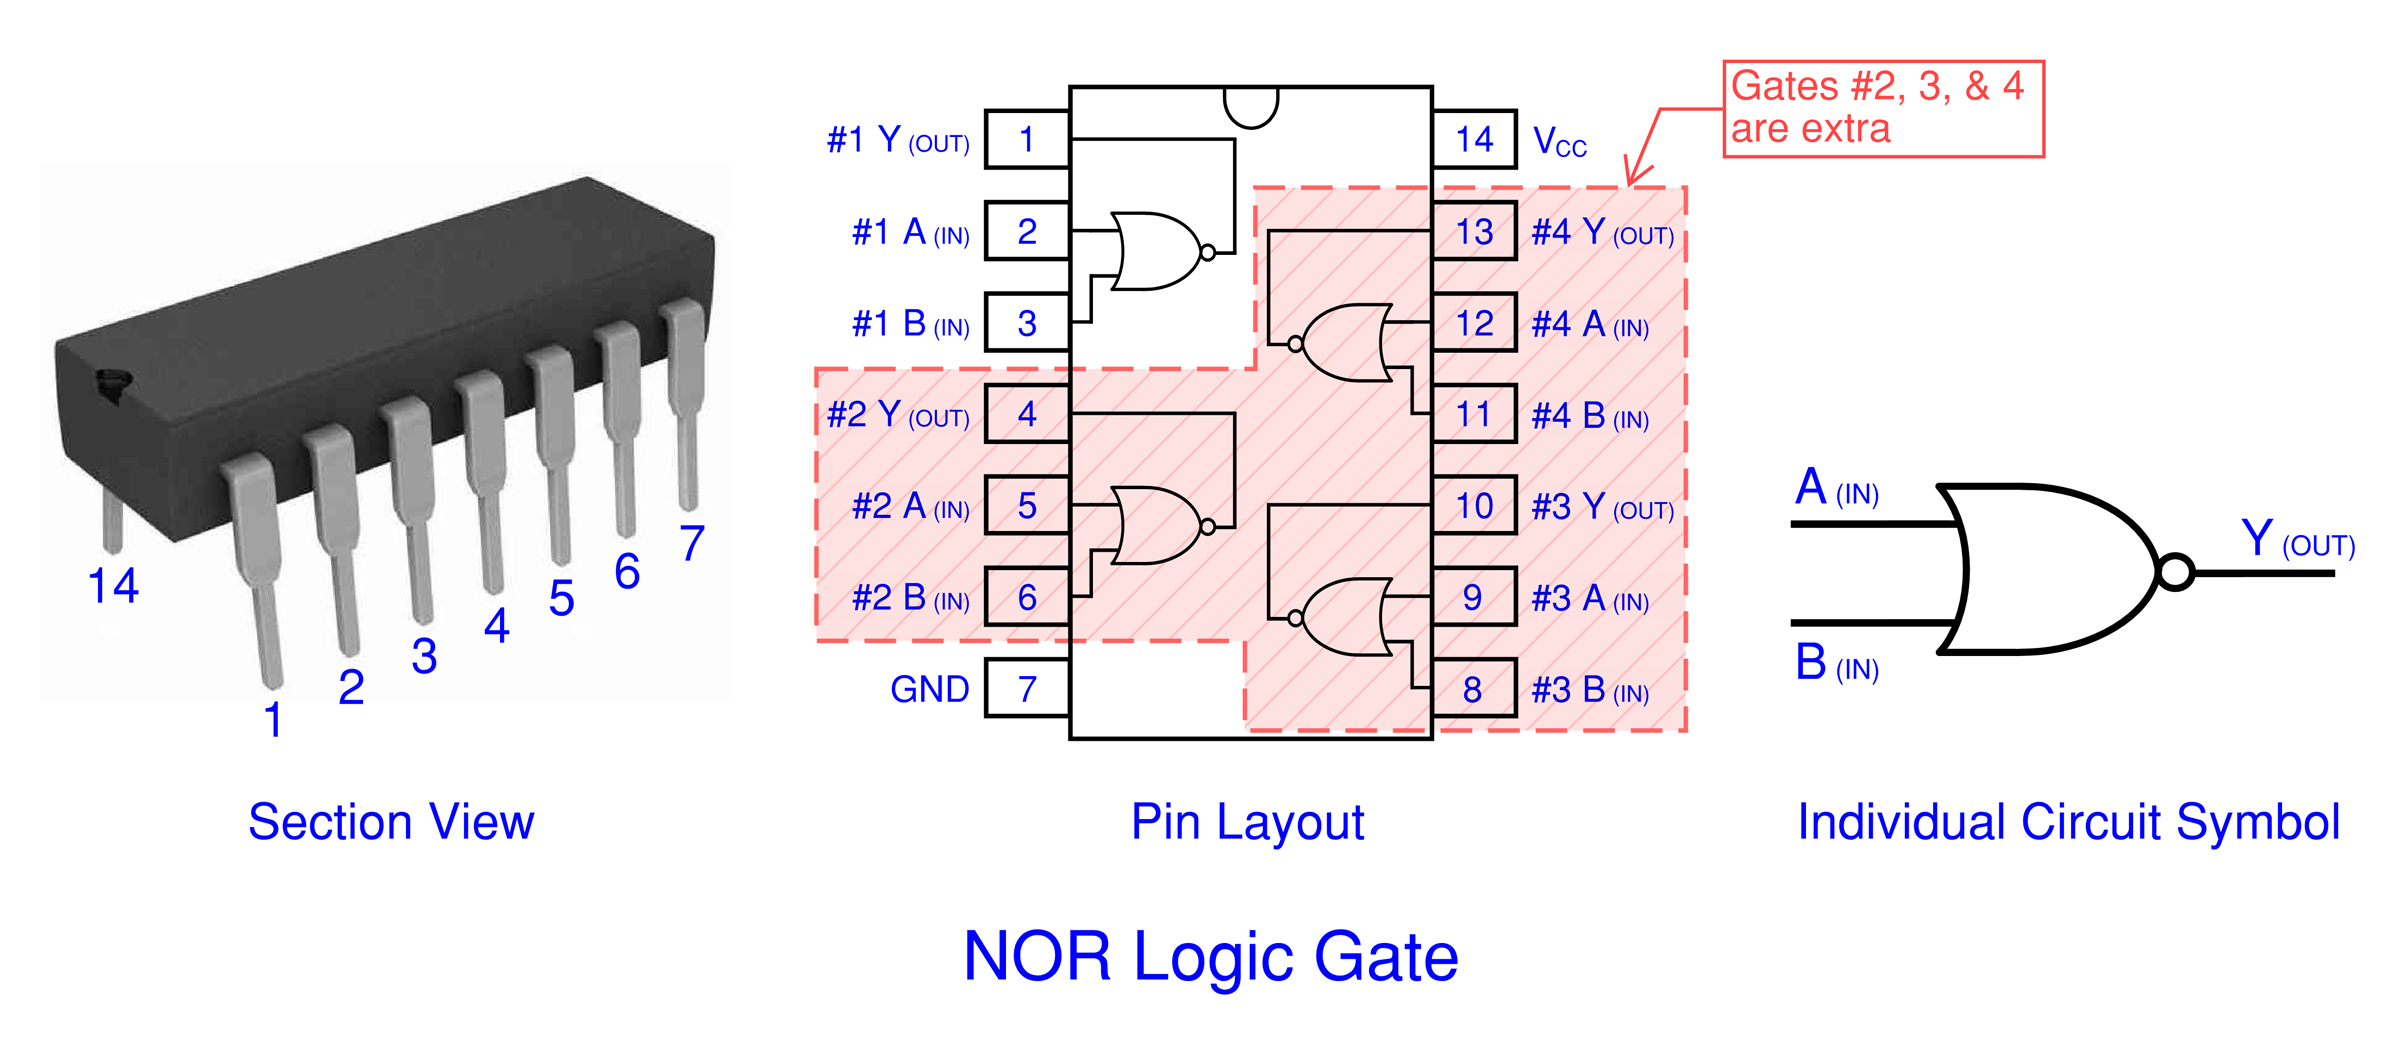 Sega Nomad Reset Button Mod Wr Labs Genesis Wiring Diagram This Design Only Needs One Gate But The Through Hole Style Chip I Could Find Is A 4 In 1 There Are Surface Mount Versions Available With Just